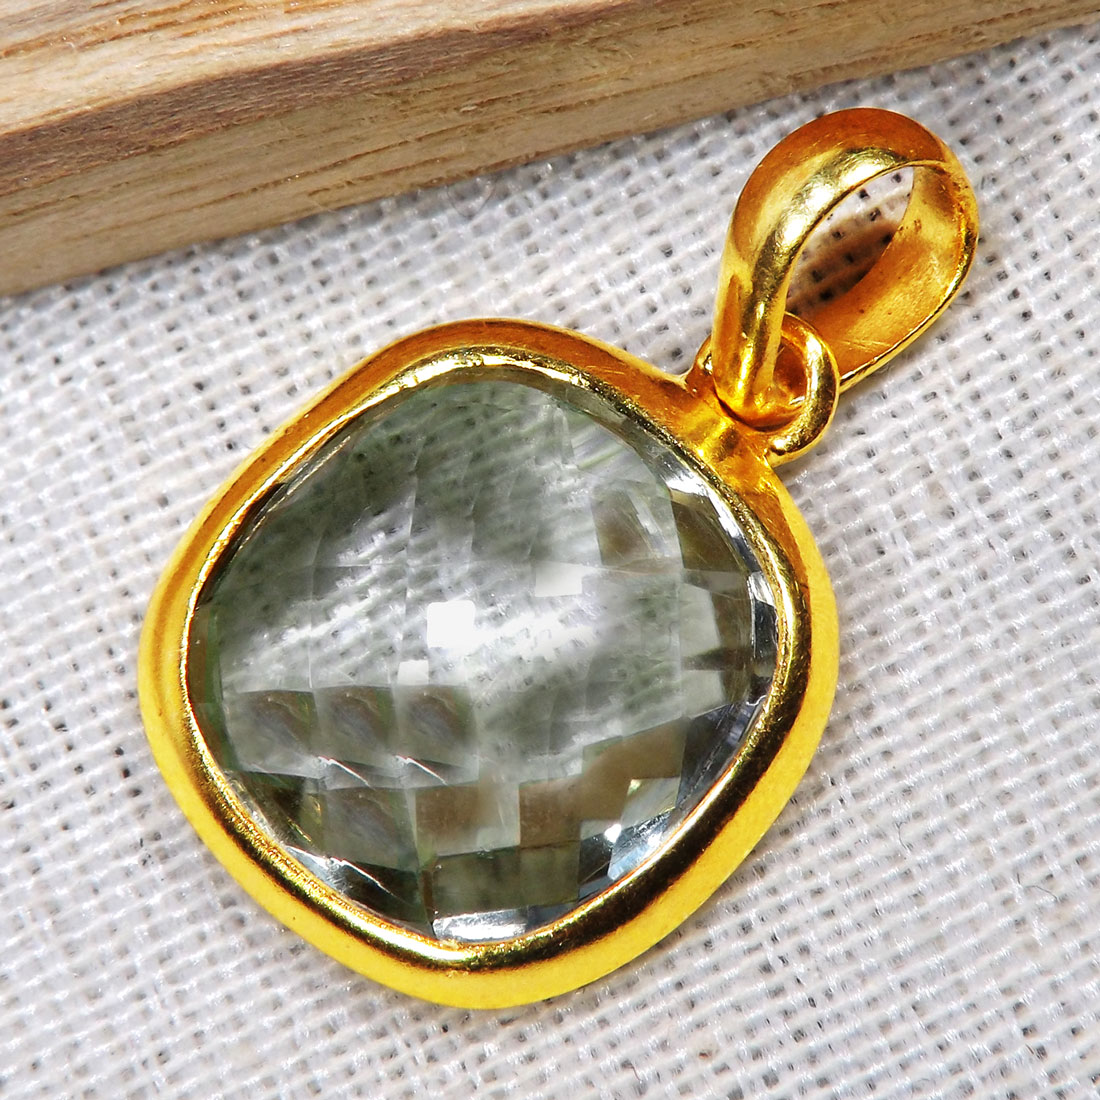 Green Amethyst D - BGP999-14TO15mm Cushion Looking Amazing Pendants of 18 Crt Gold